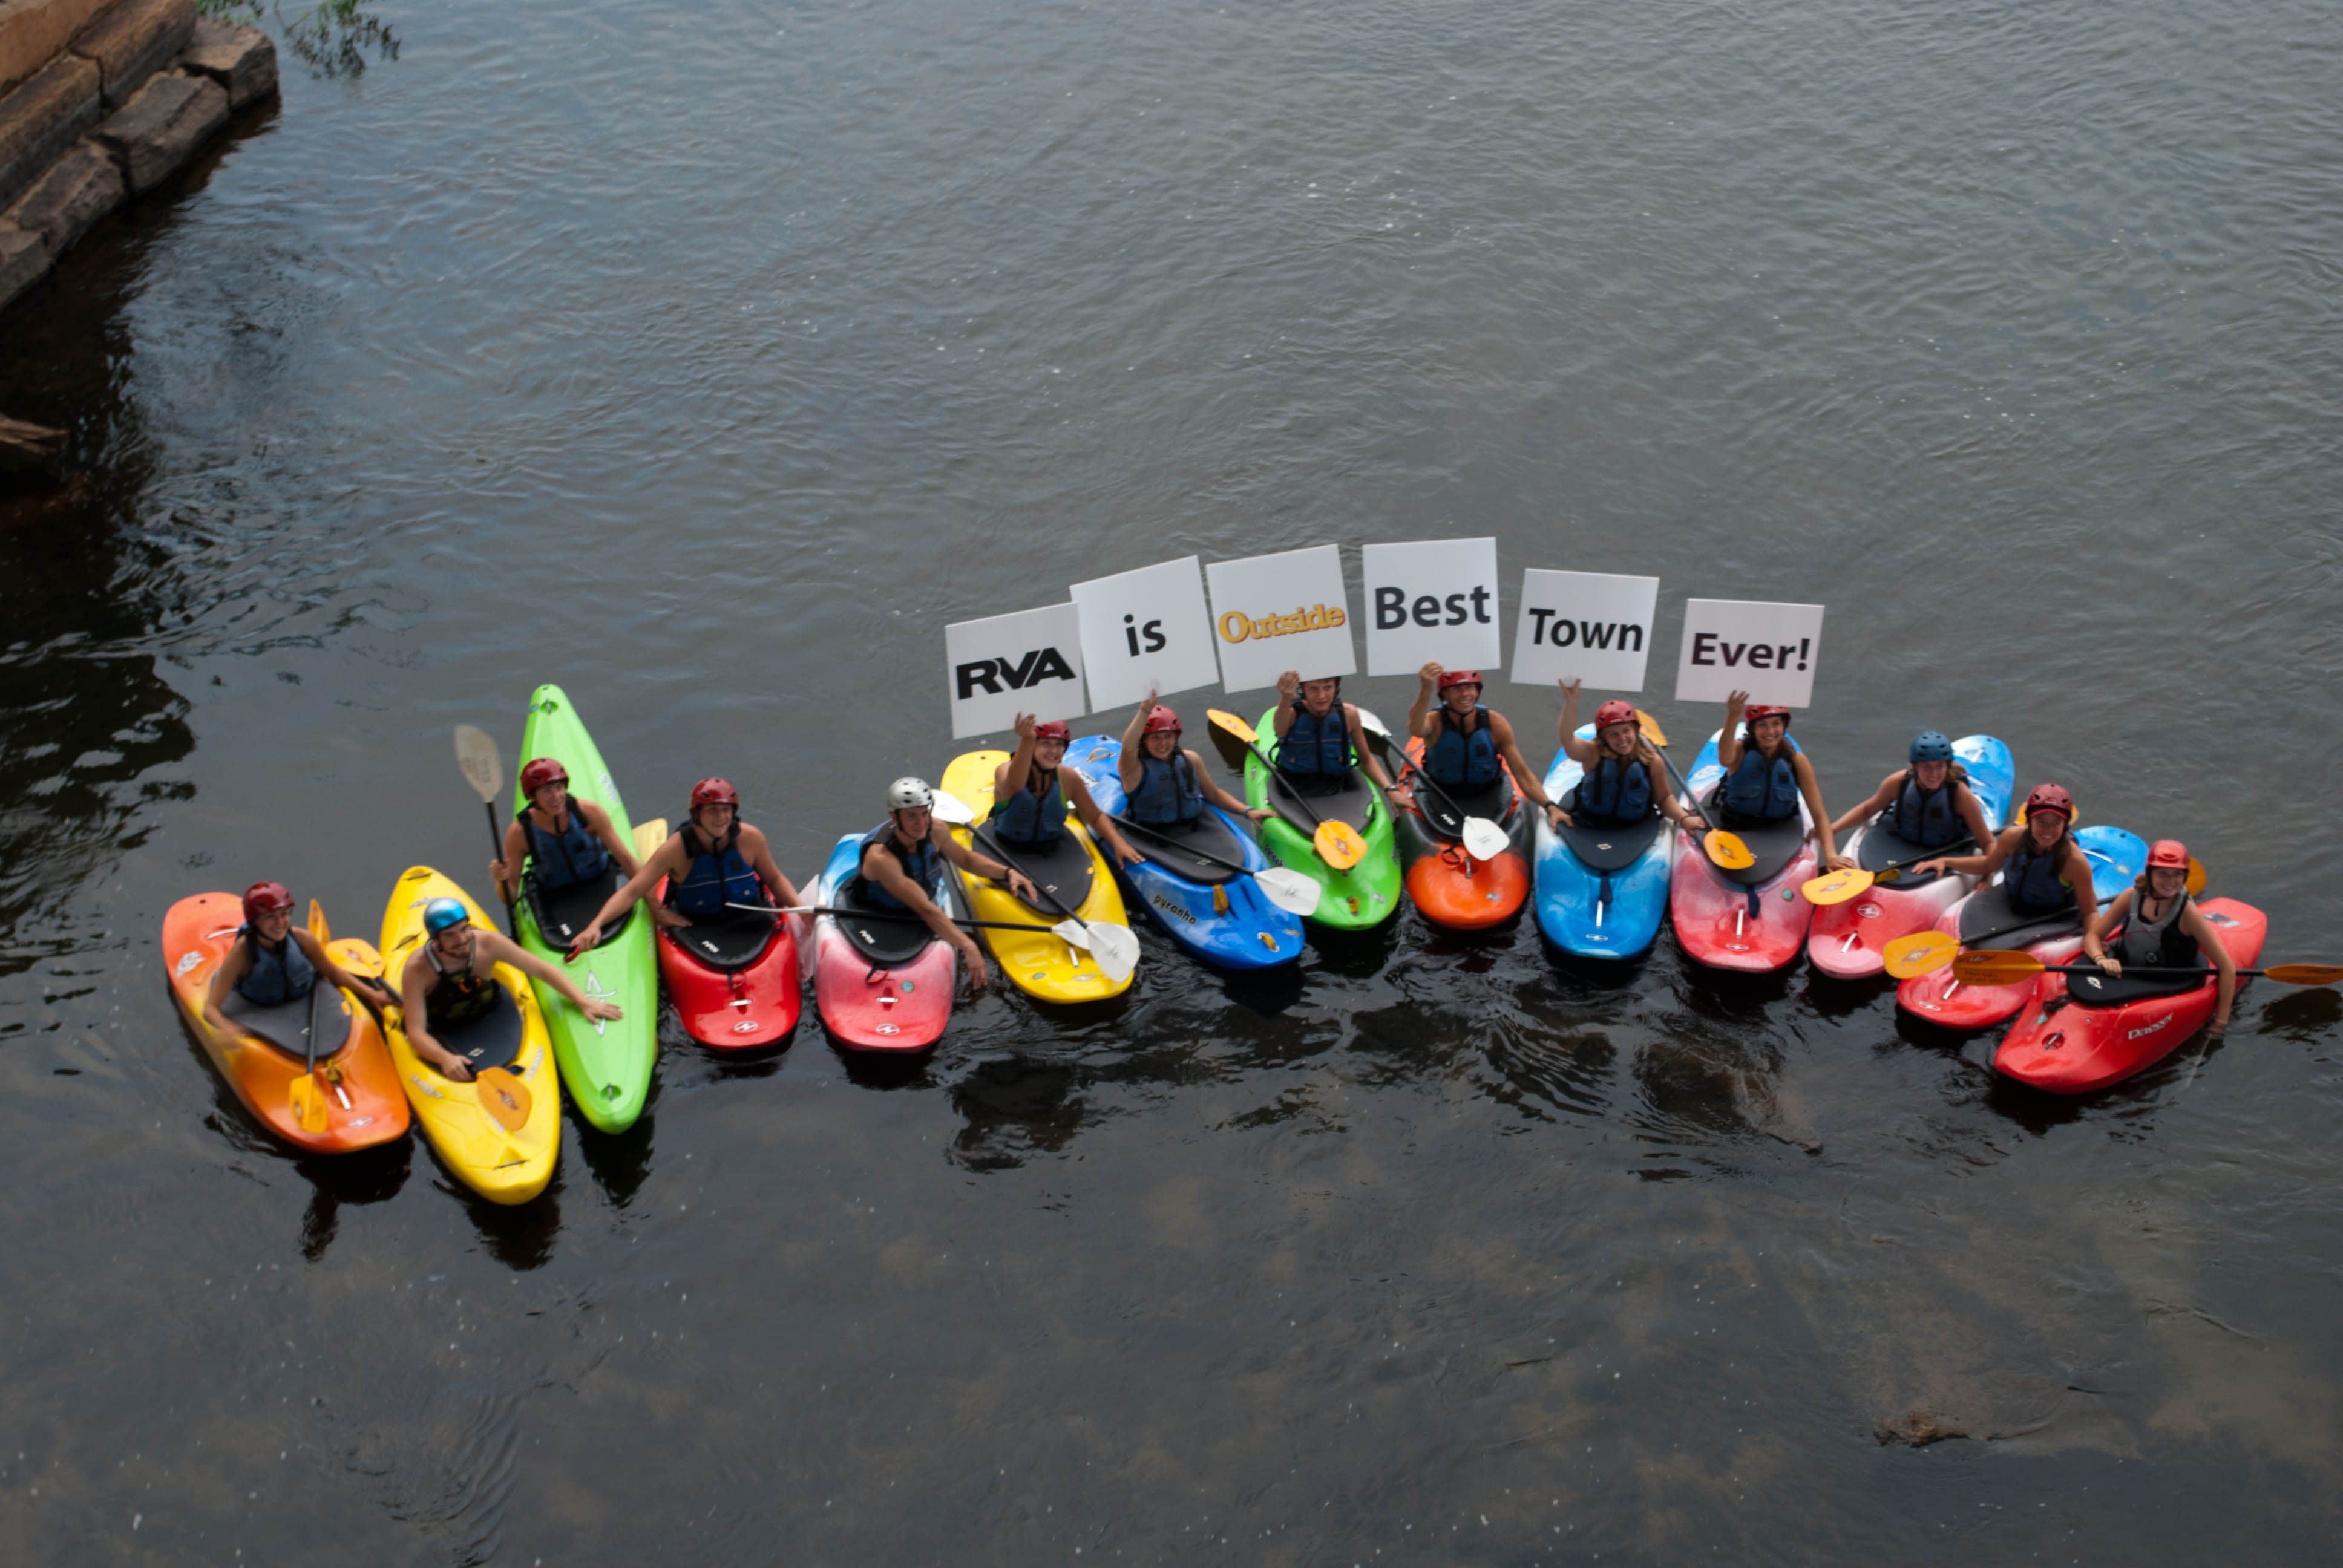 Kayakers support the Best Town Ever (12)